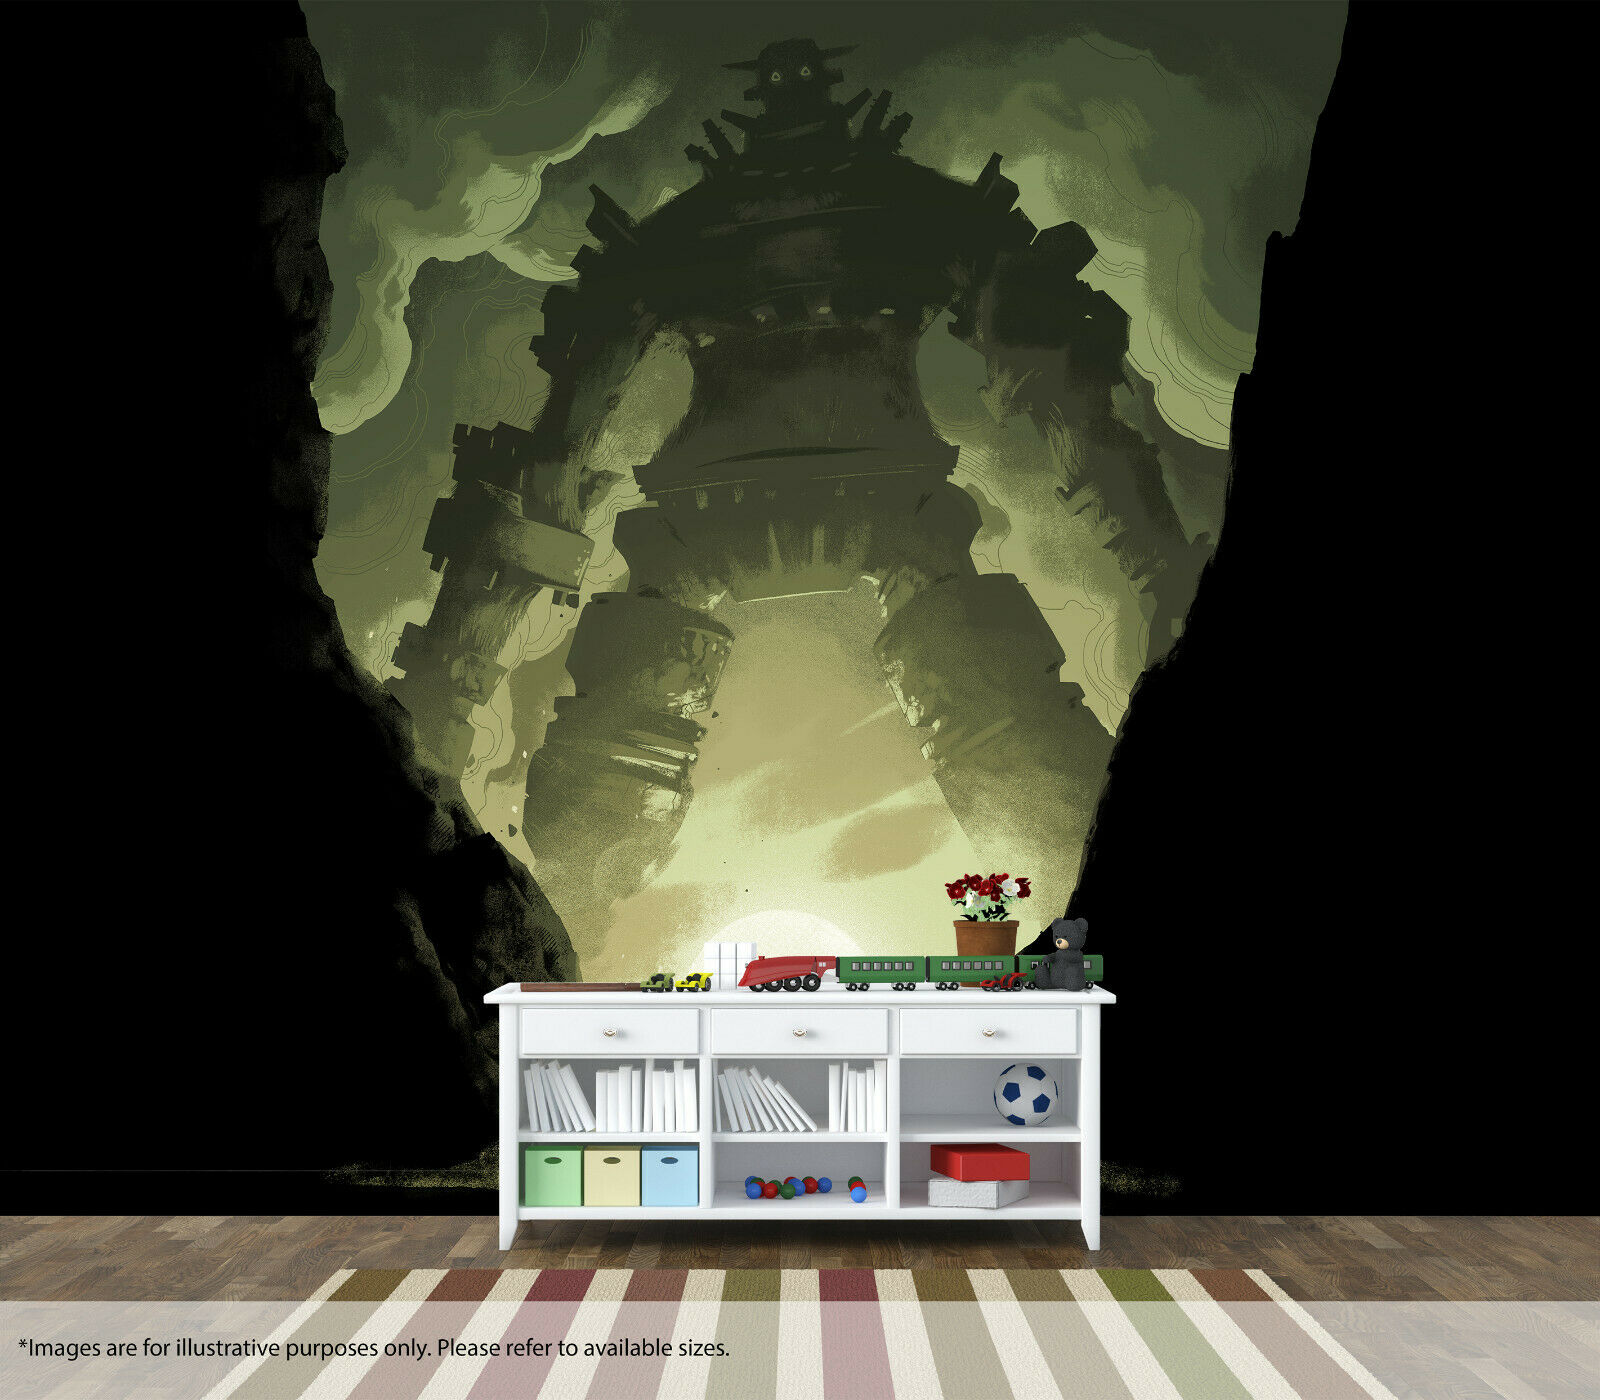 Shadow Of The Colossus Game Art Wall Mural Quality Pastable Wallpaper Decal